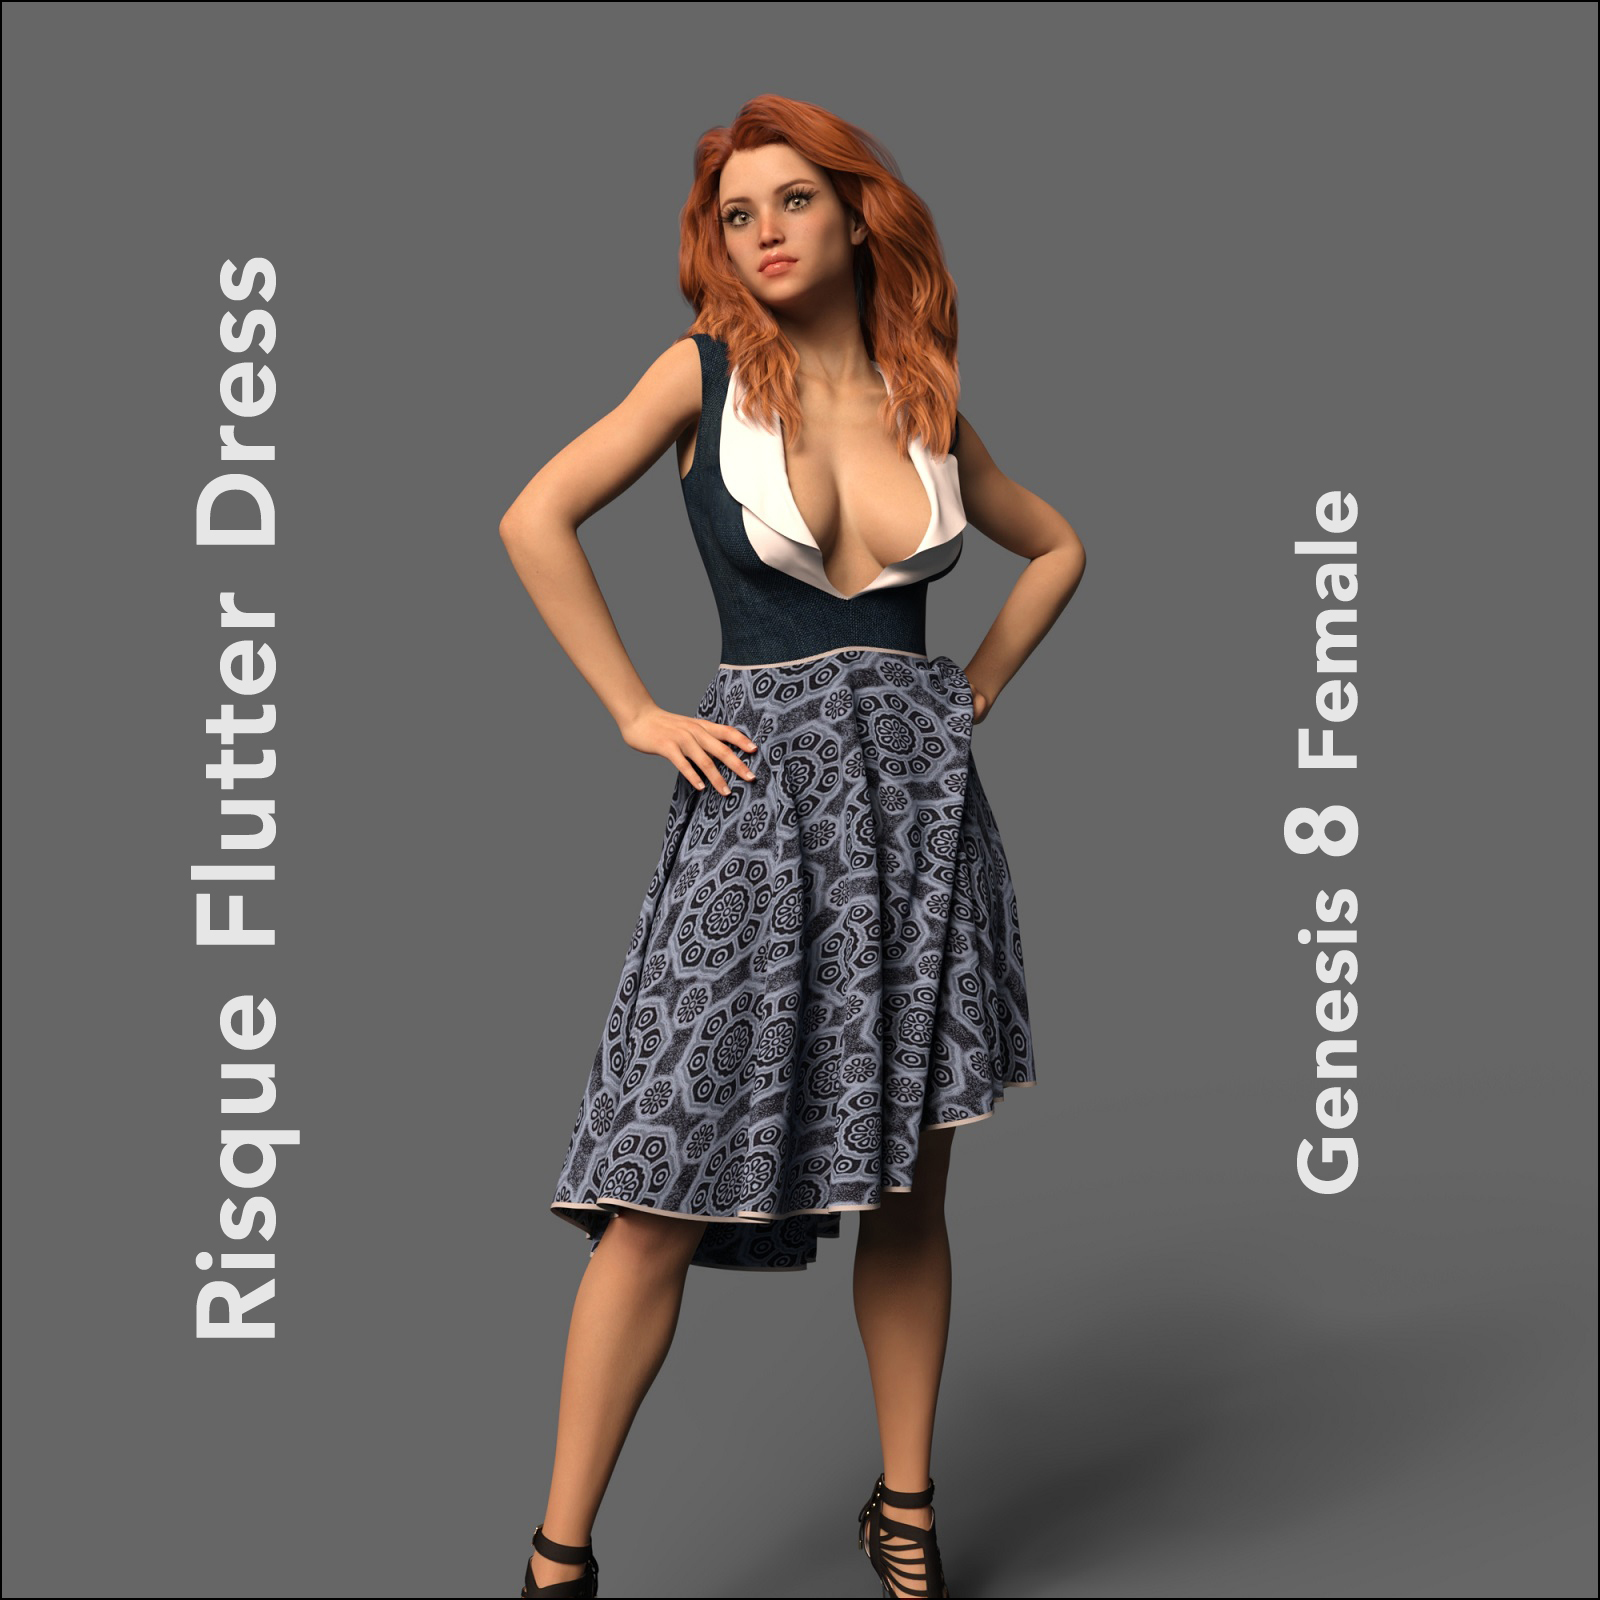 The Risque Flutter Dress for Genesis 8 Female